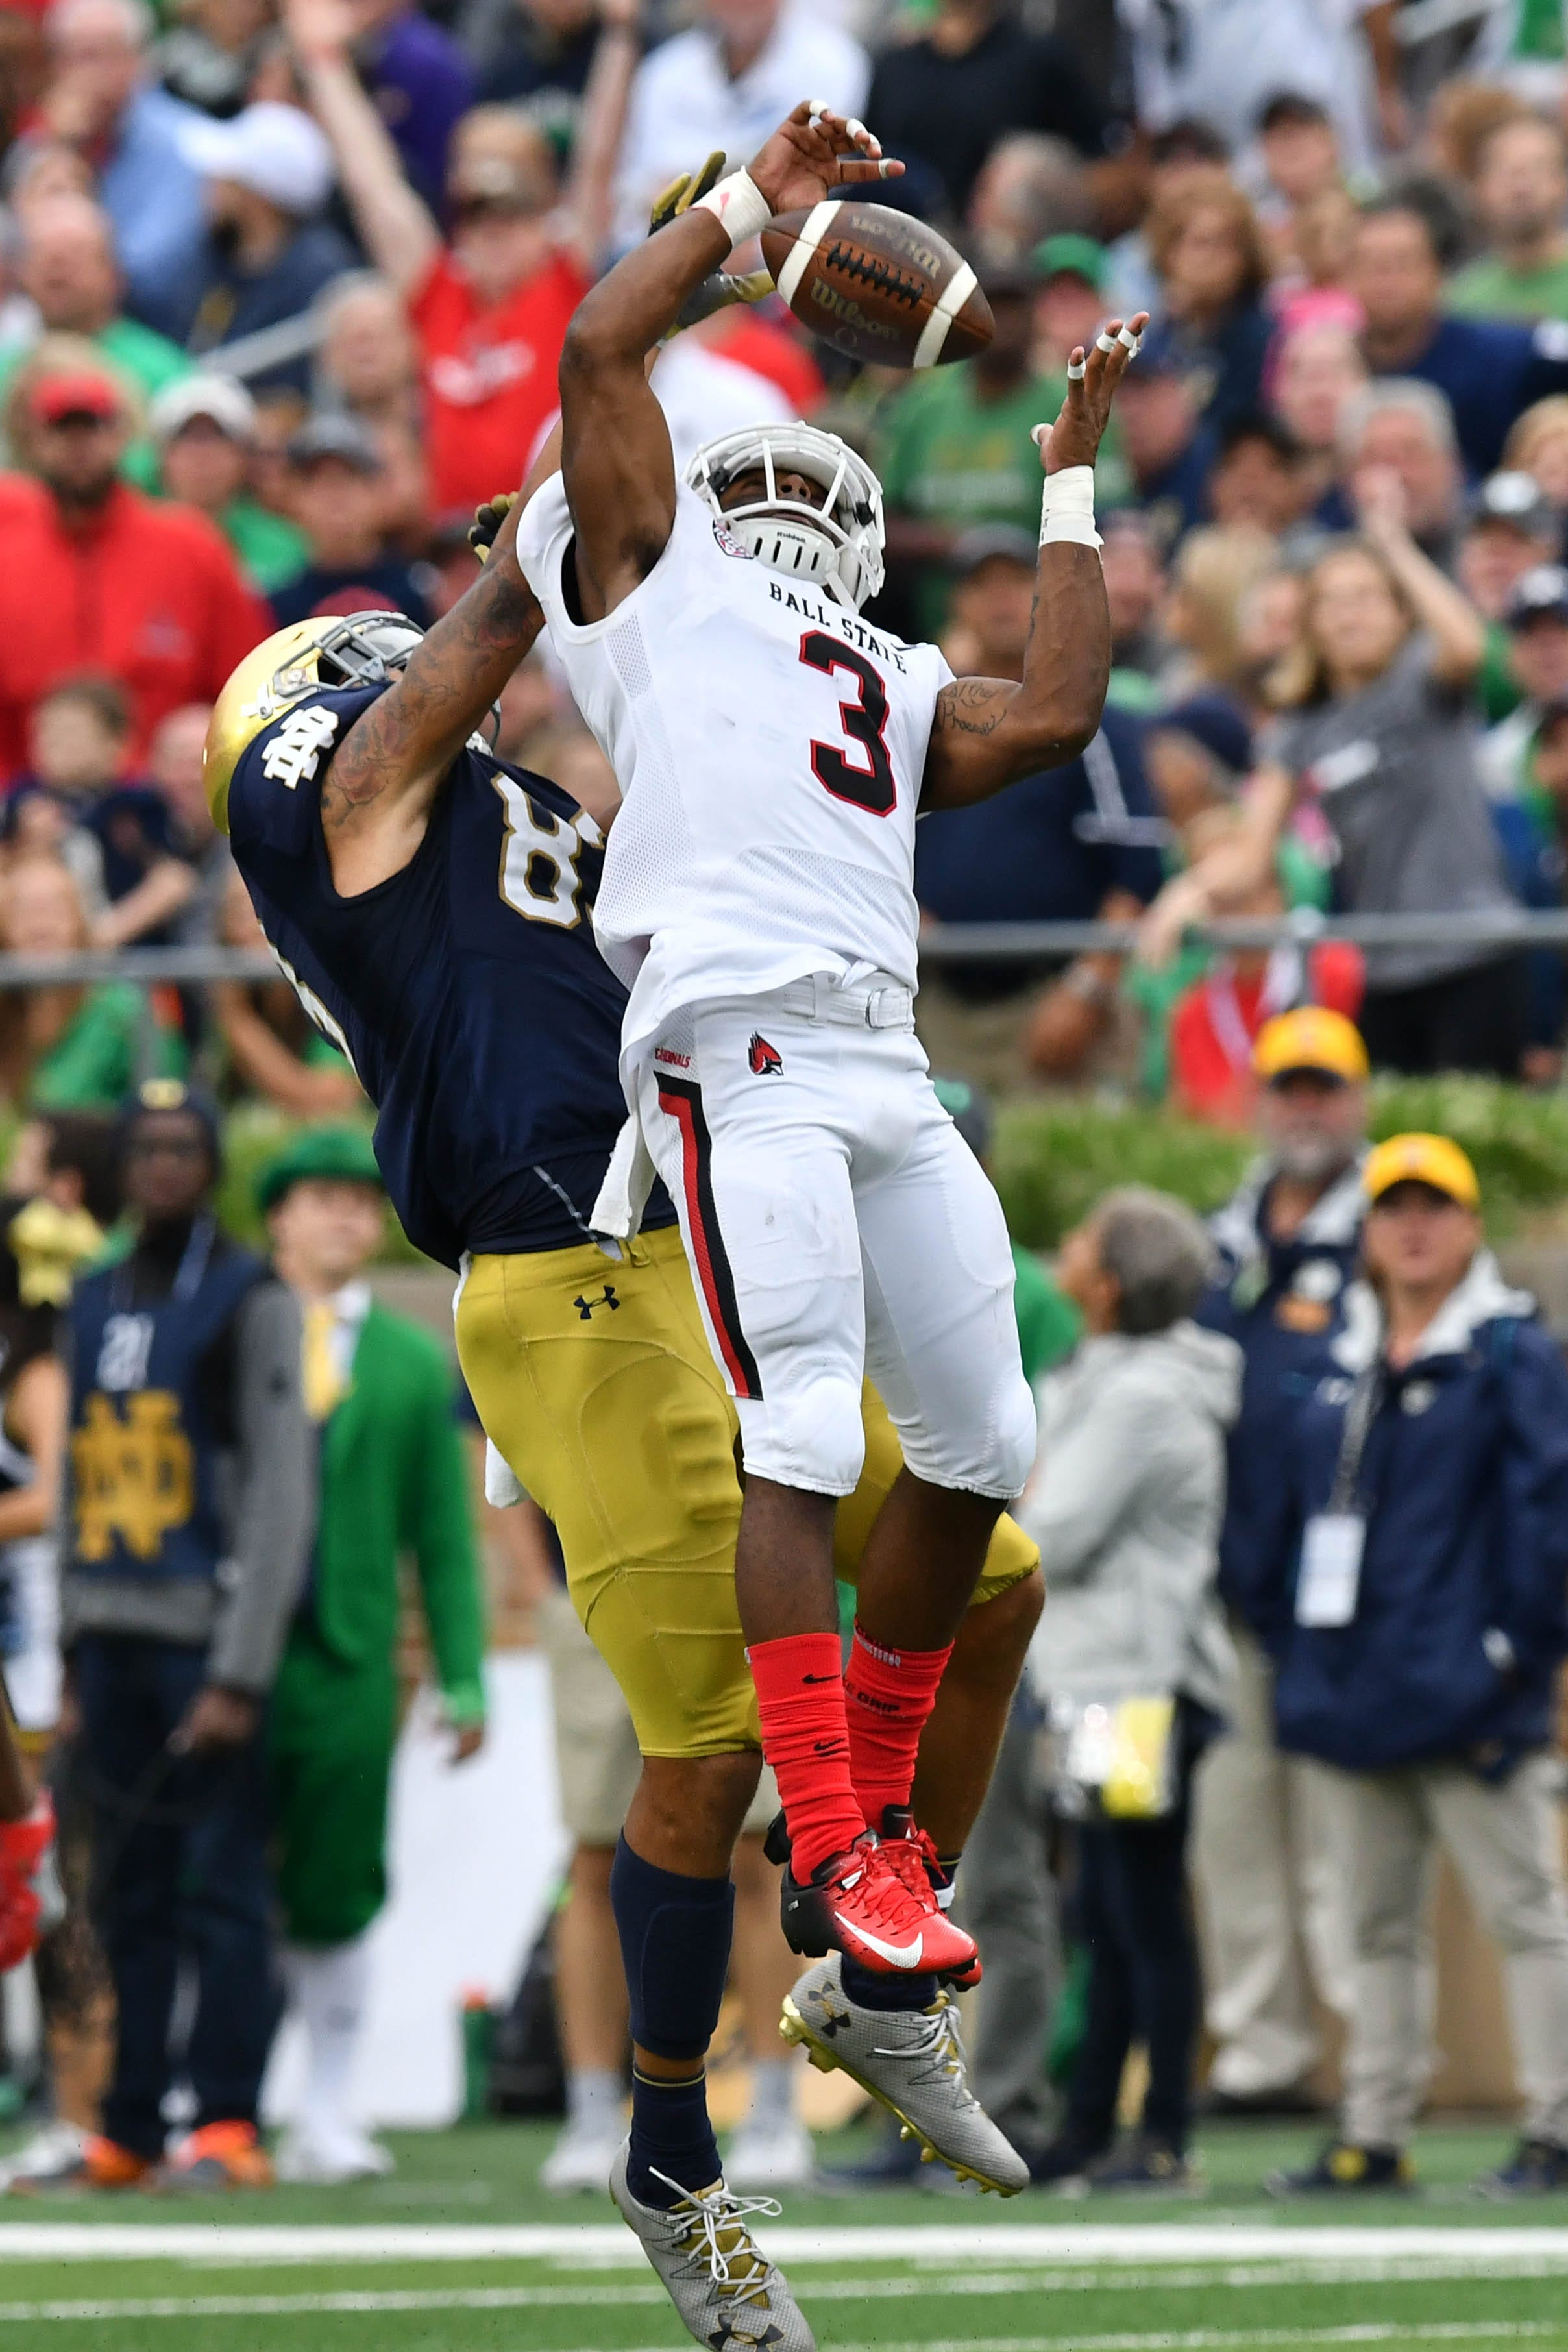 Ball State Cardinals cornerback Josh Miller (3) intercepts a pass intended for Notre Dame Fighting Irish wide receiver Chase Claypool (83) in the second quarter Sep. 8, 2018 at Notre Dame Stadium.